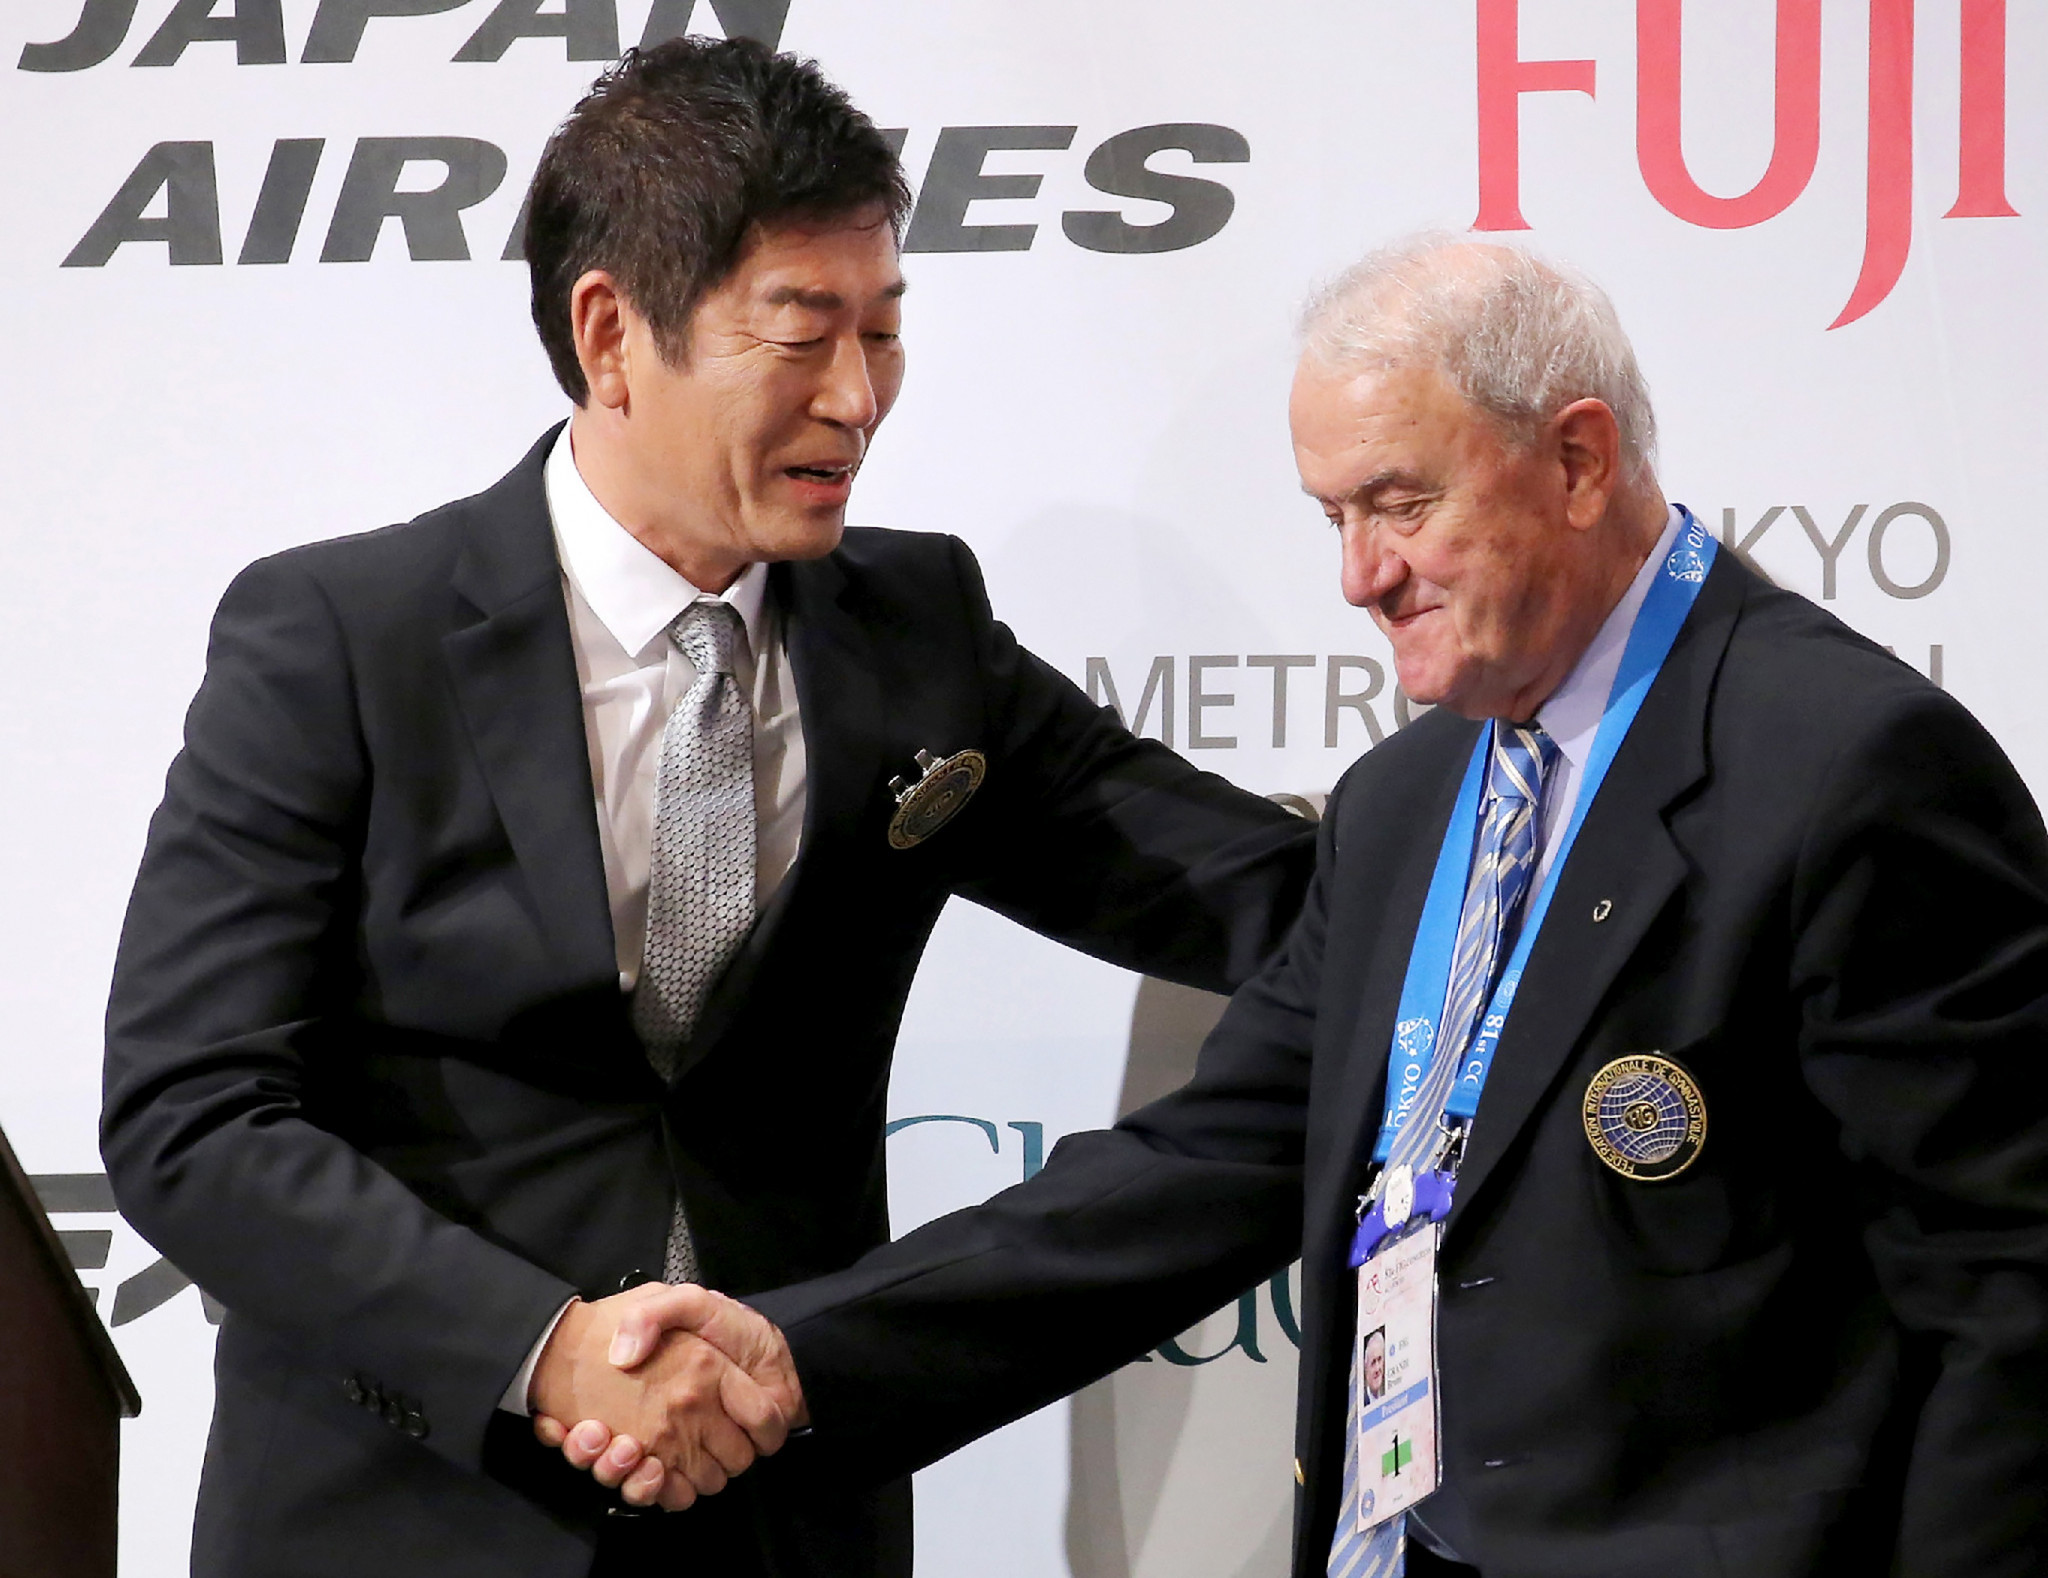 Morinari Watanabe, left, is the first IOC member from FIG since Bruno Grandi, right ©Getty Images